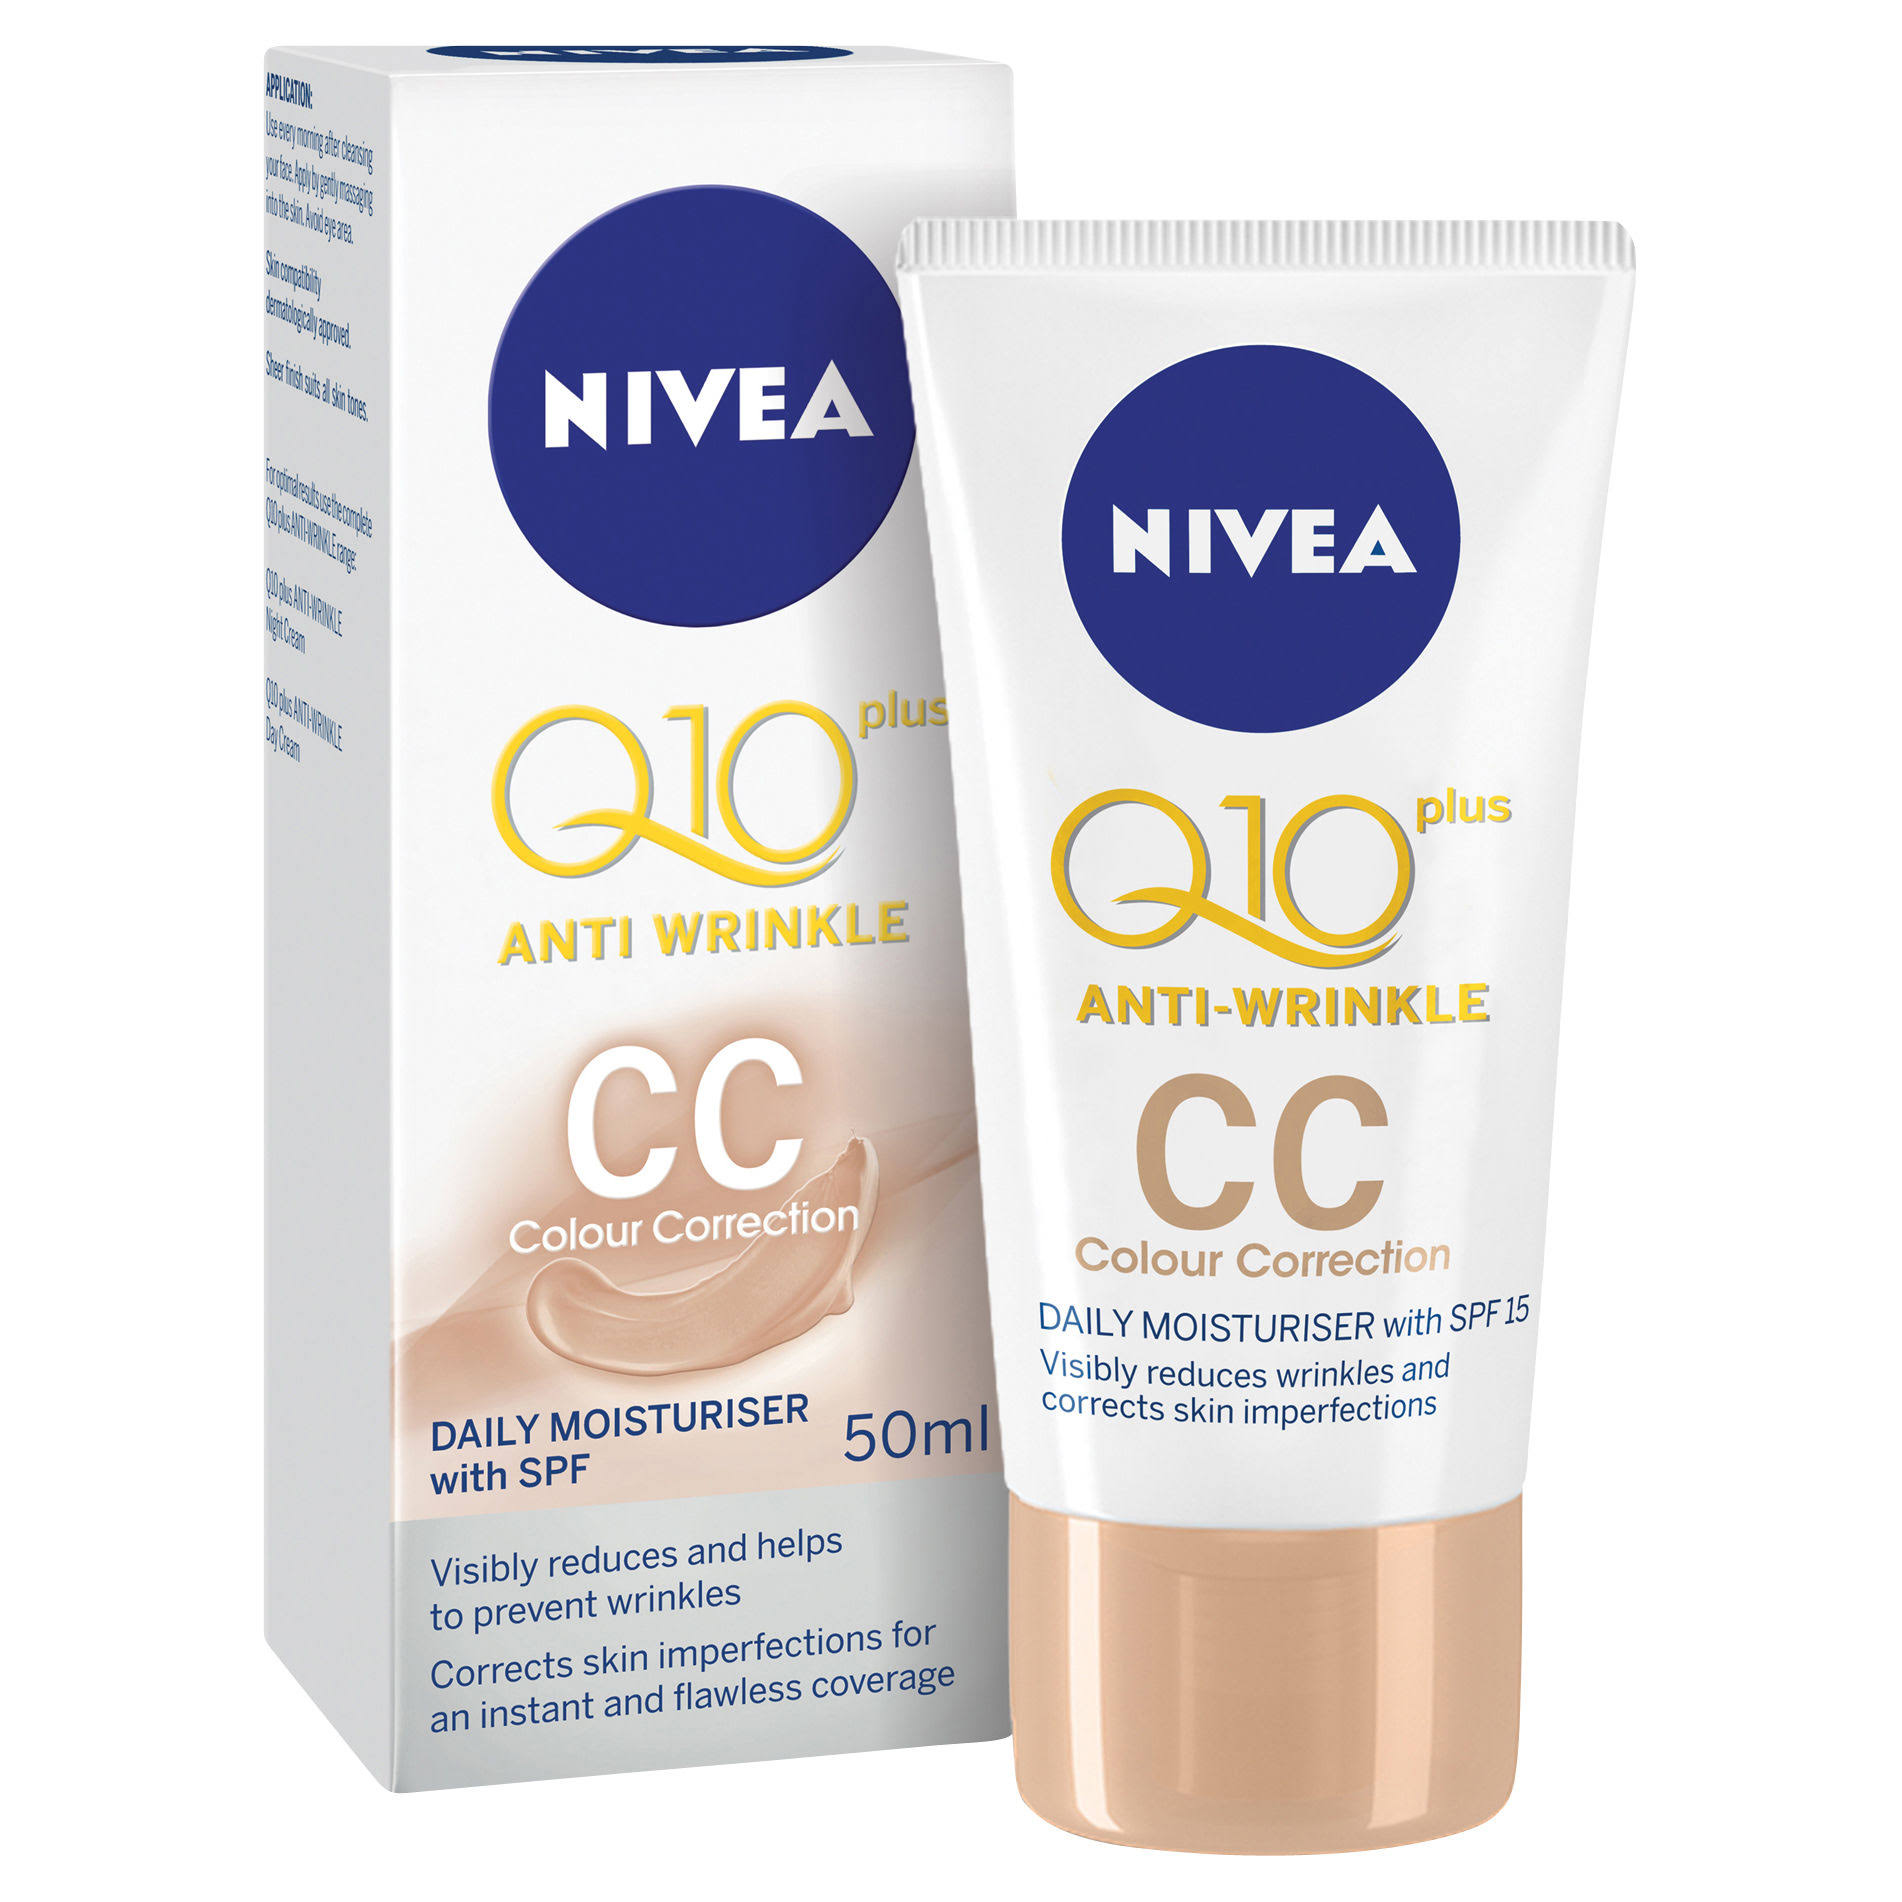 NIVEA Q10 Plus Anti-Wrinkle CC Tinted Day Cream - SPF 15, 50ml